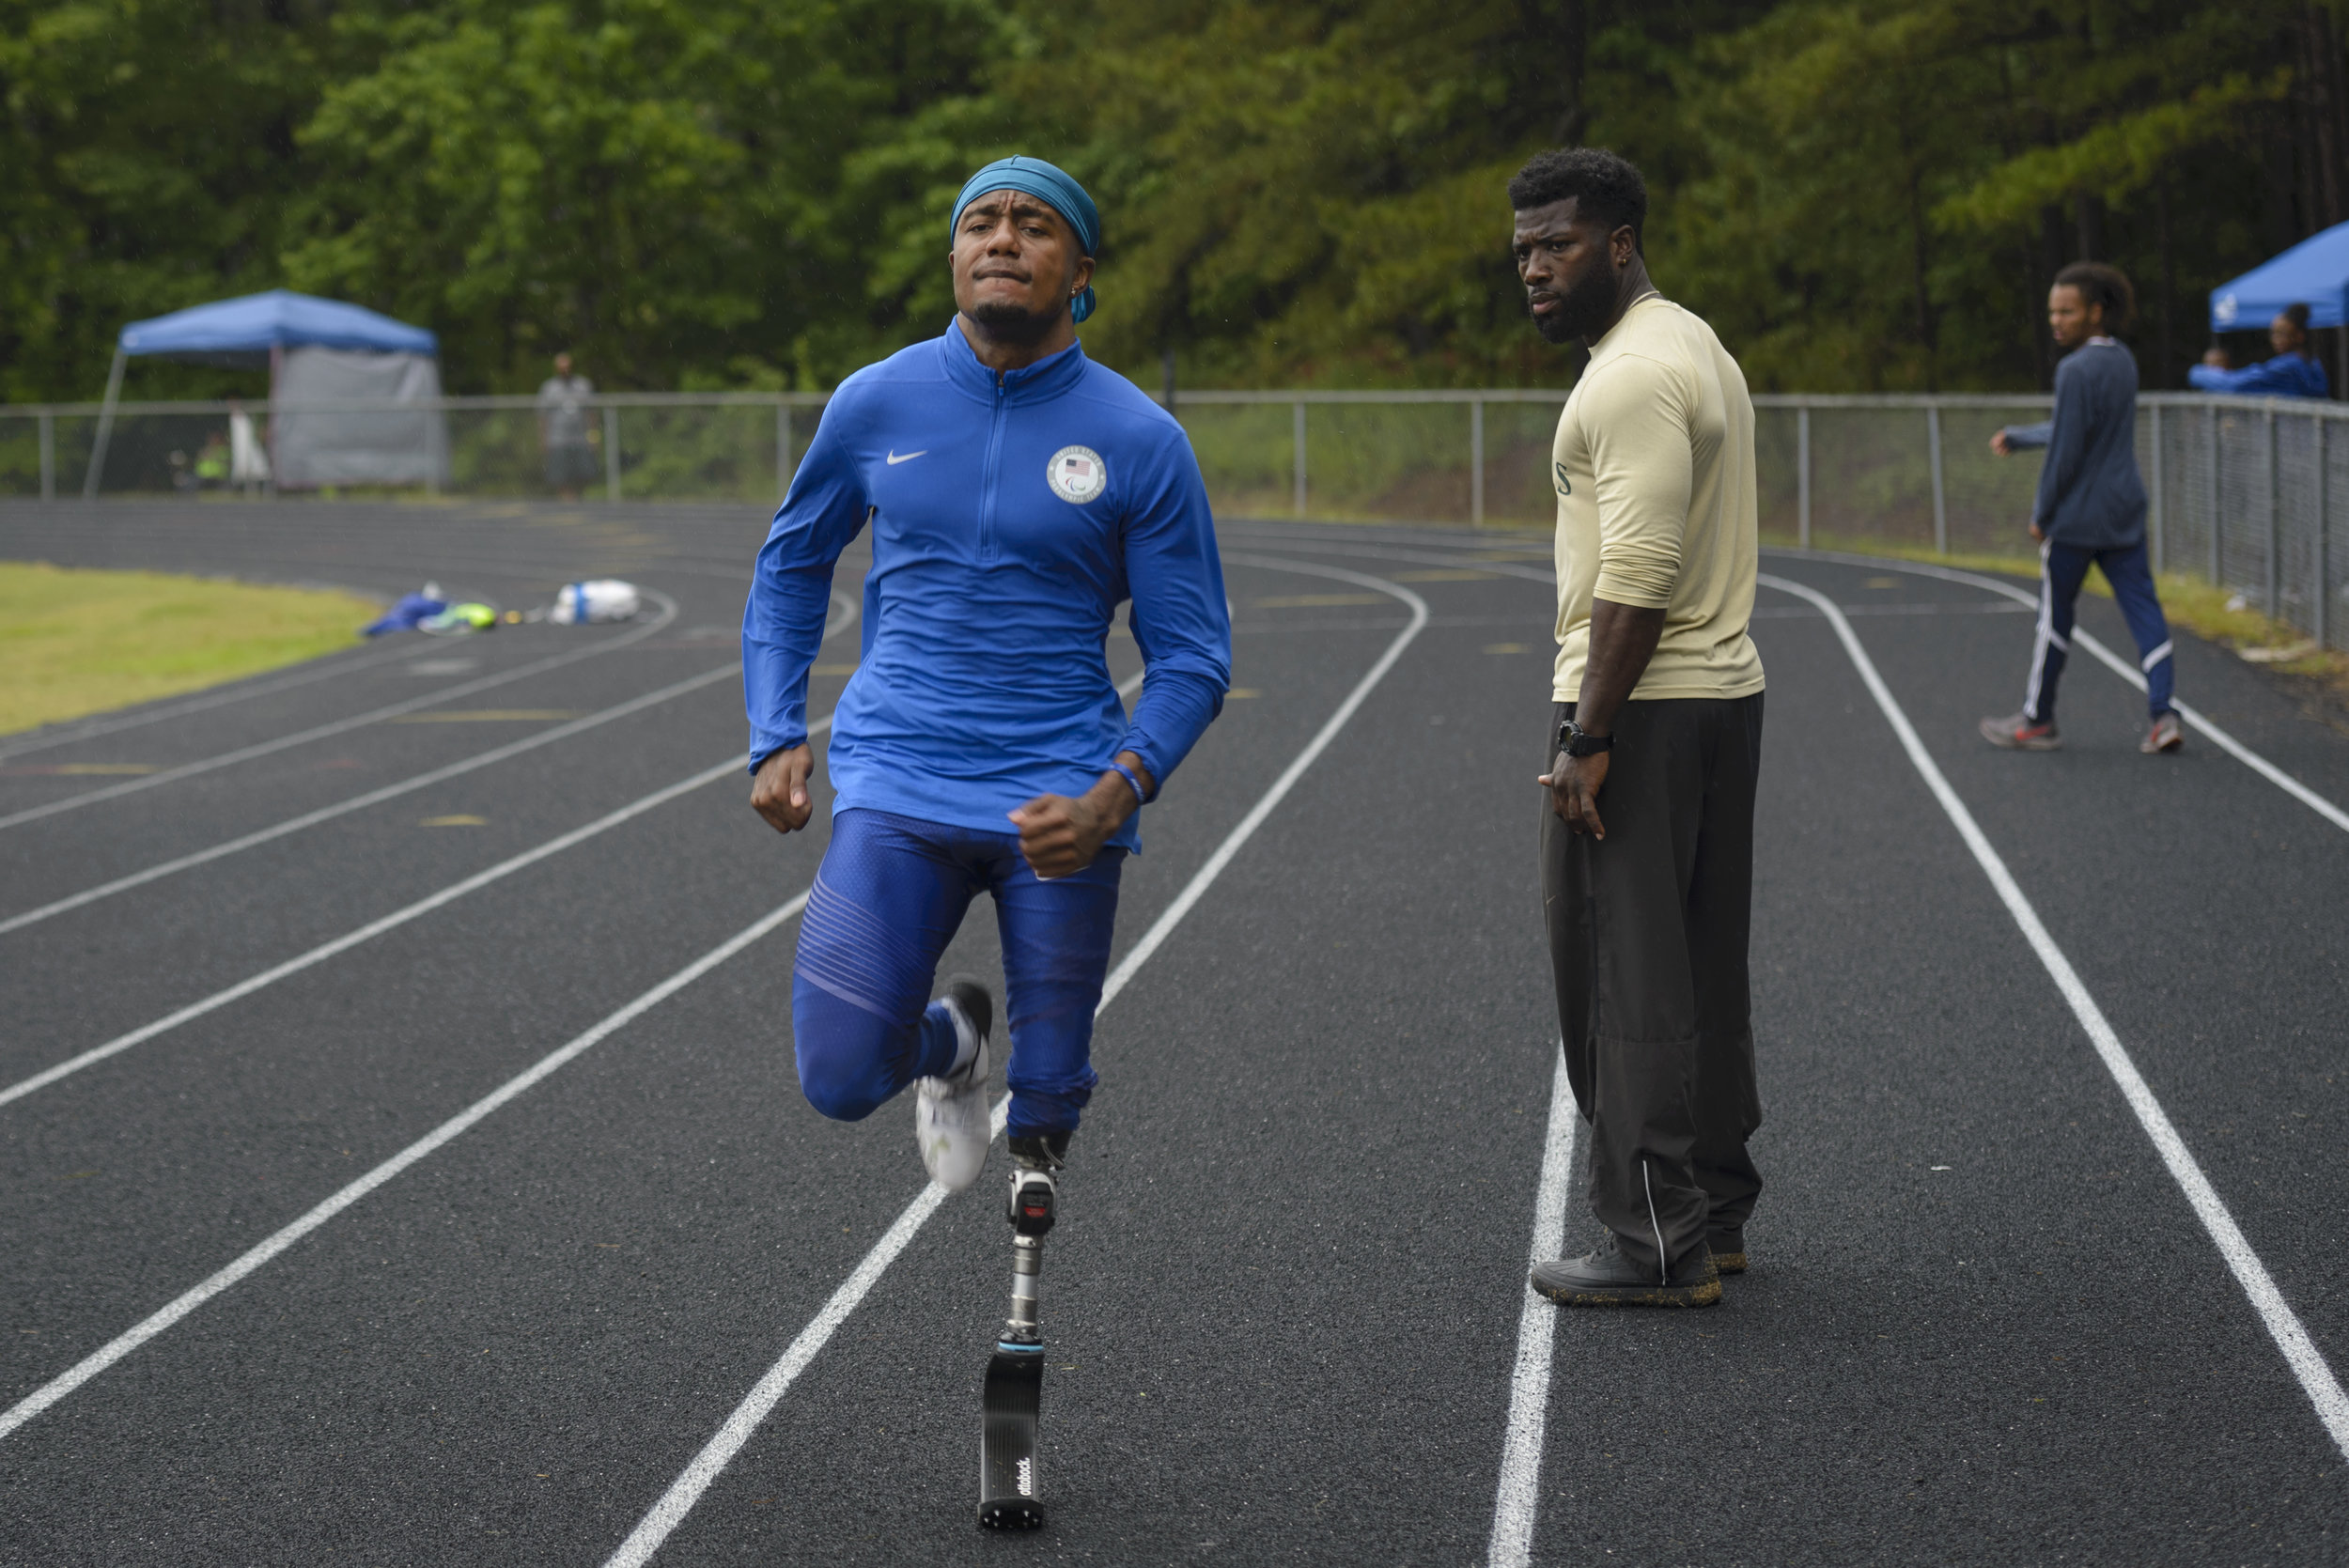 U.S. Paralympian Desmond Jackson warms up before his race in Durham, NC on June 8, 2019.